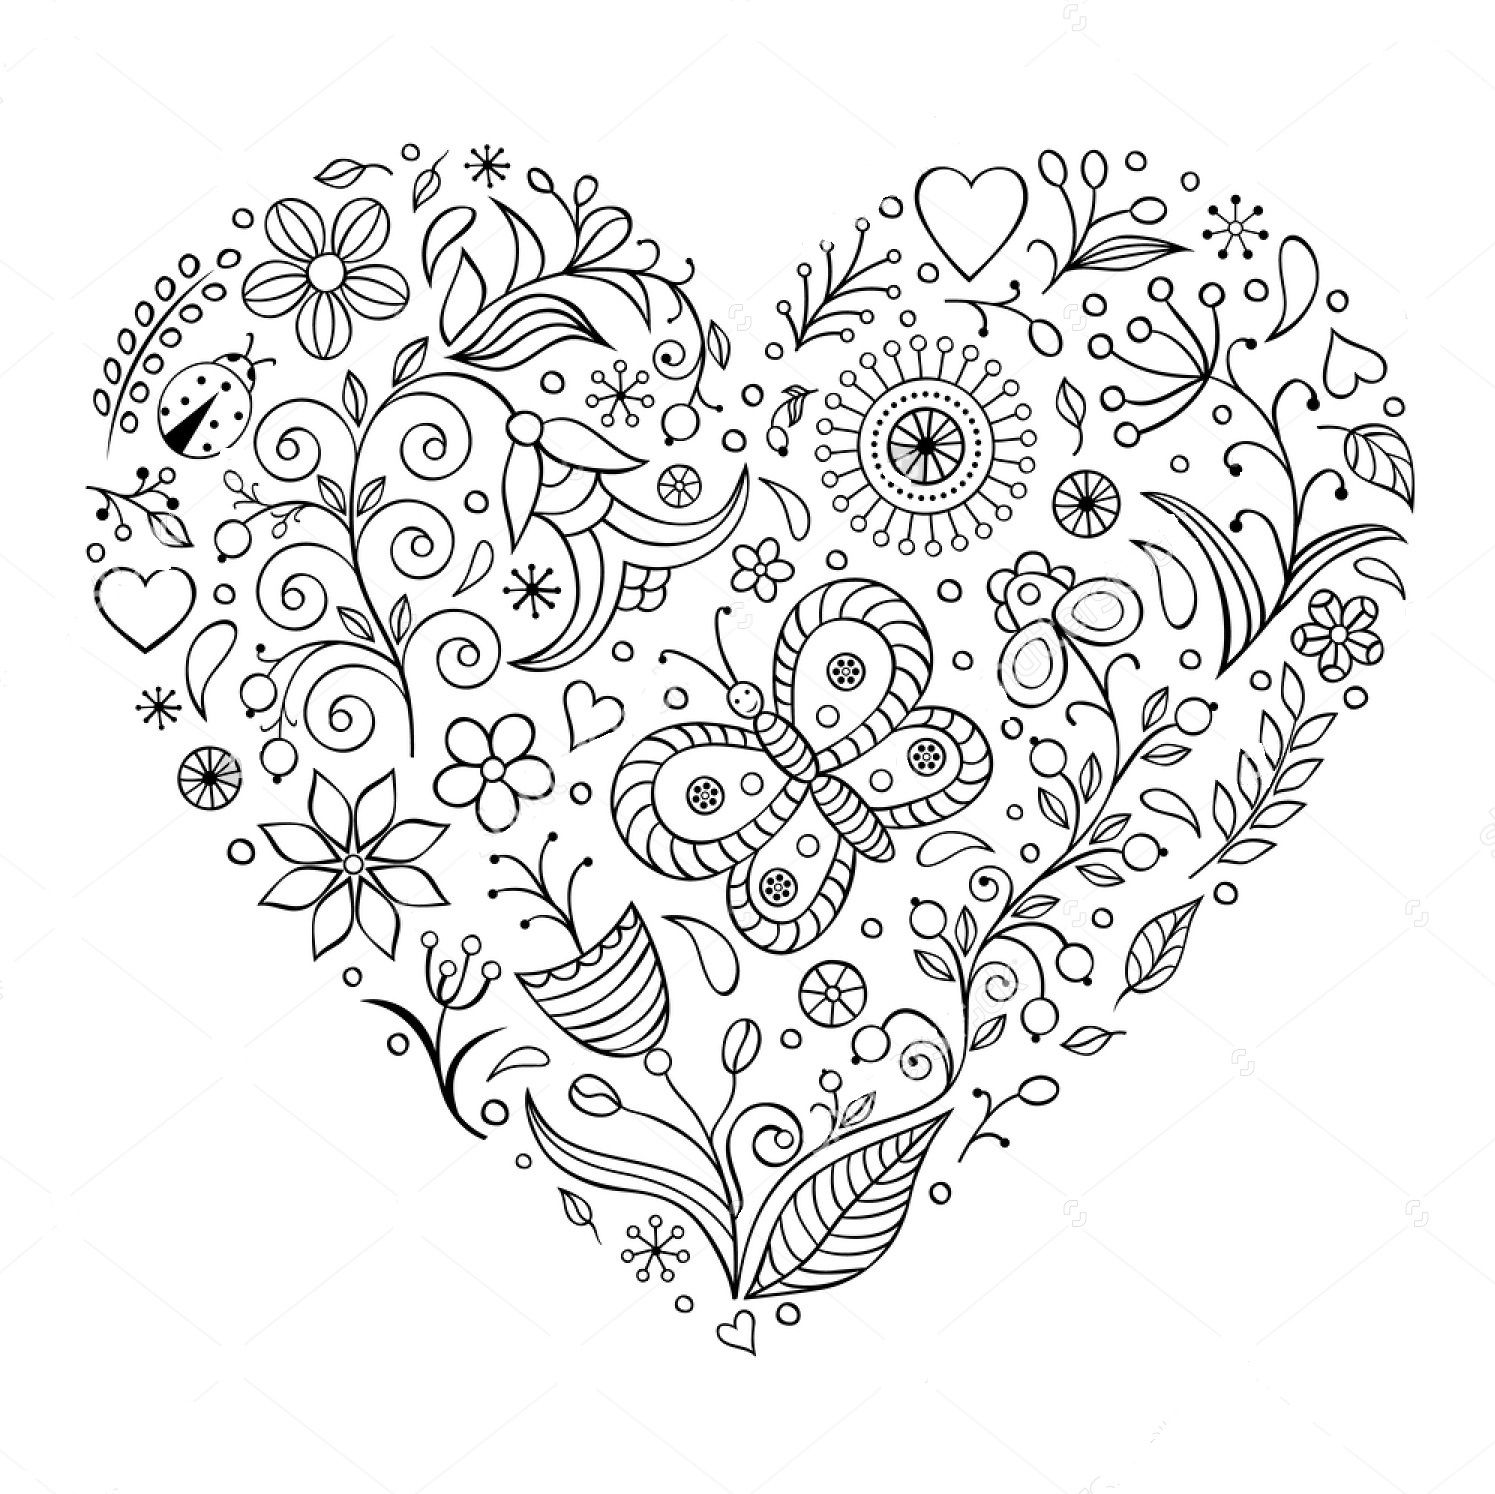 Printable coloring pages zentangle - Heart Zentangle Coloring Page